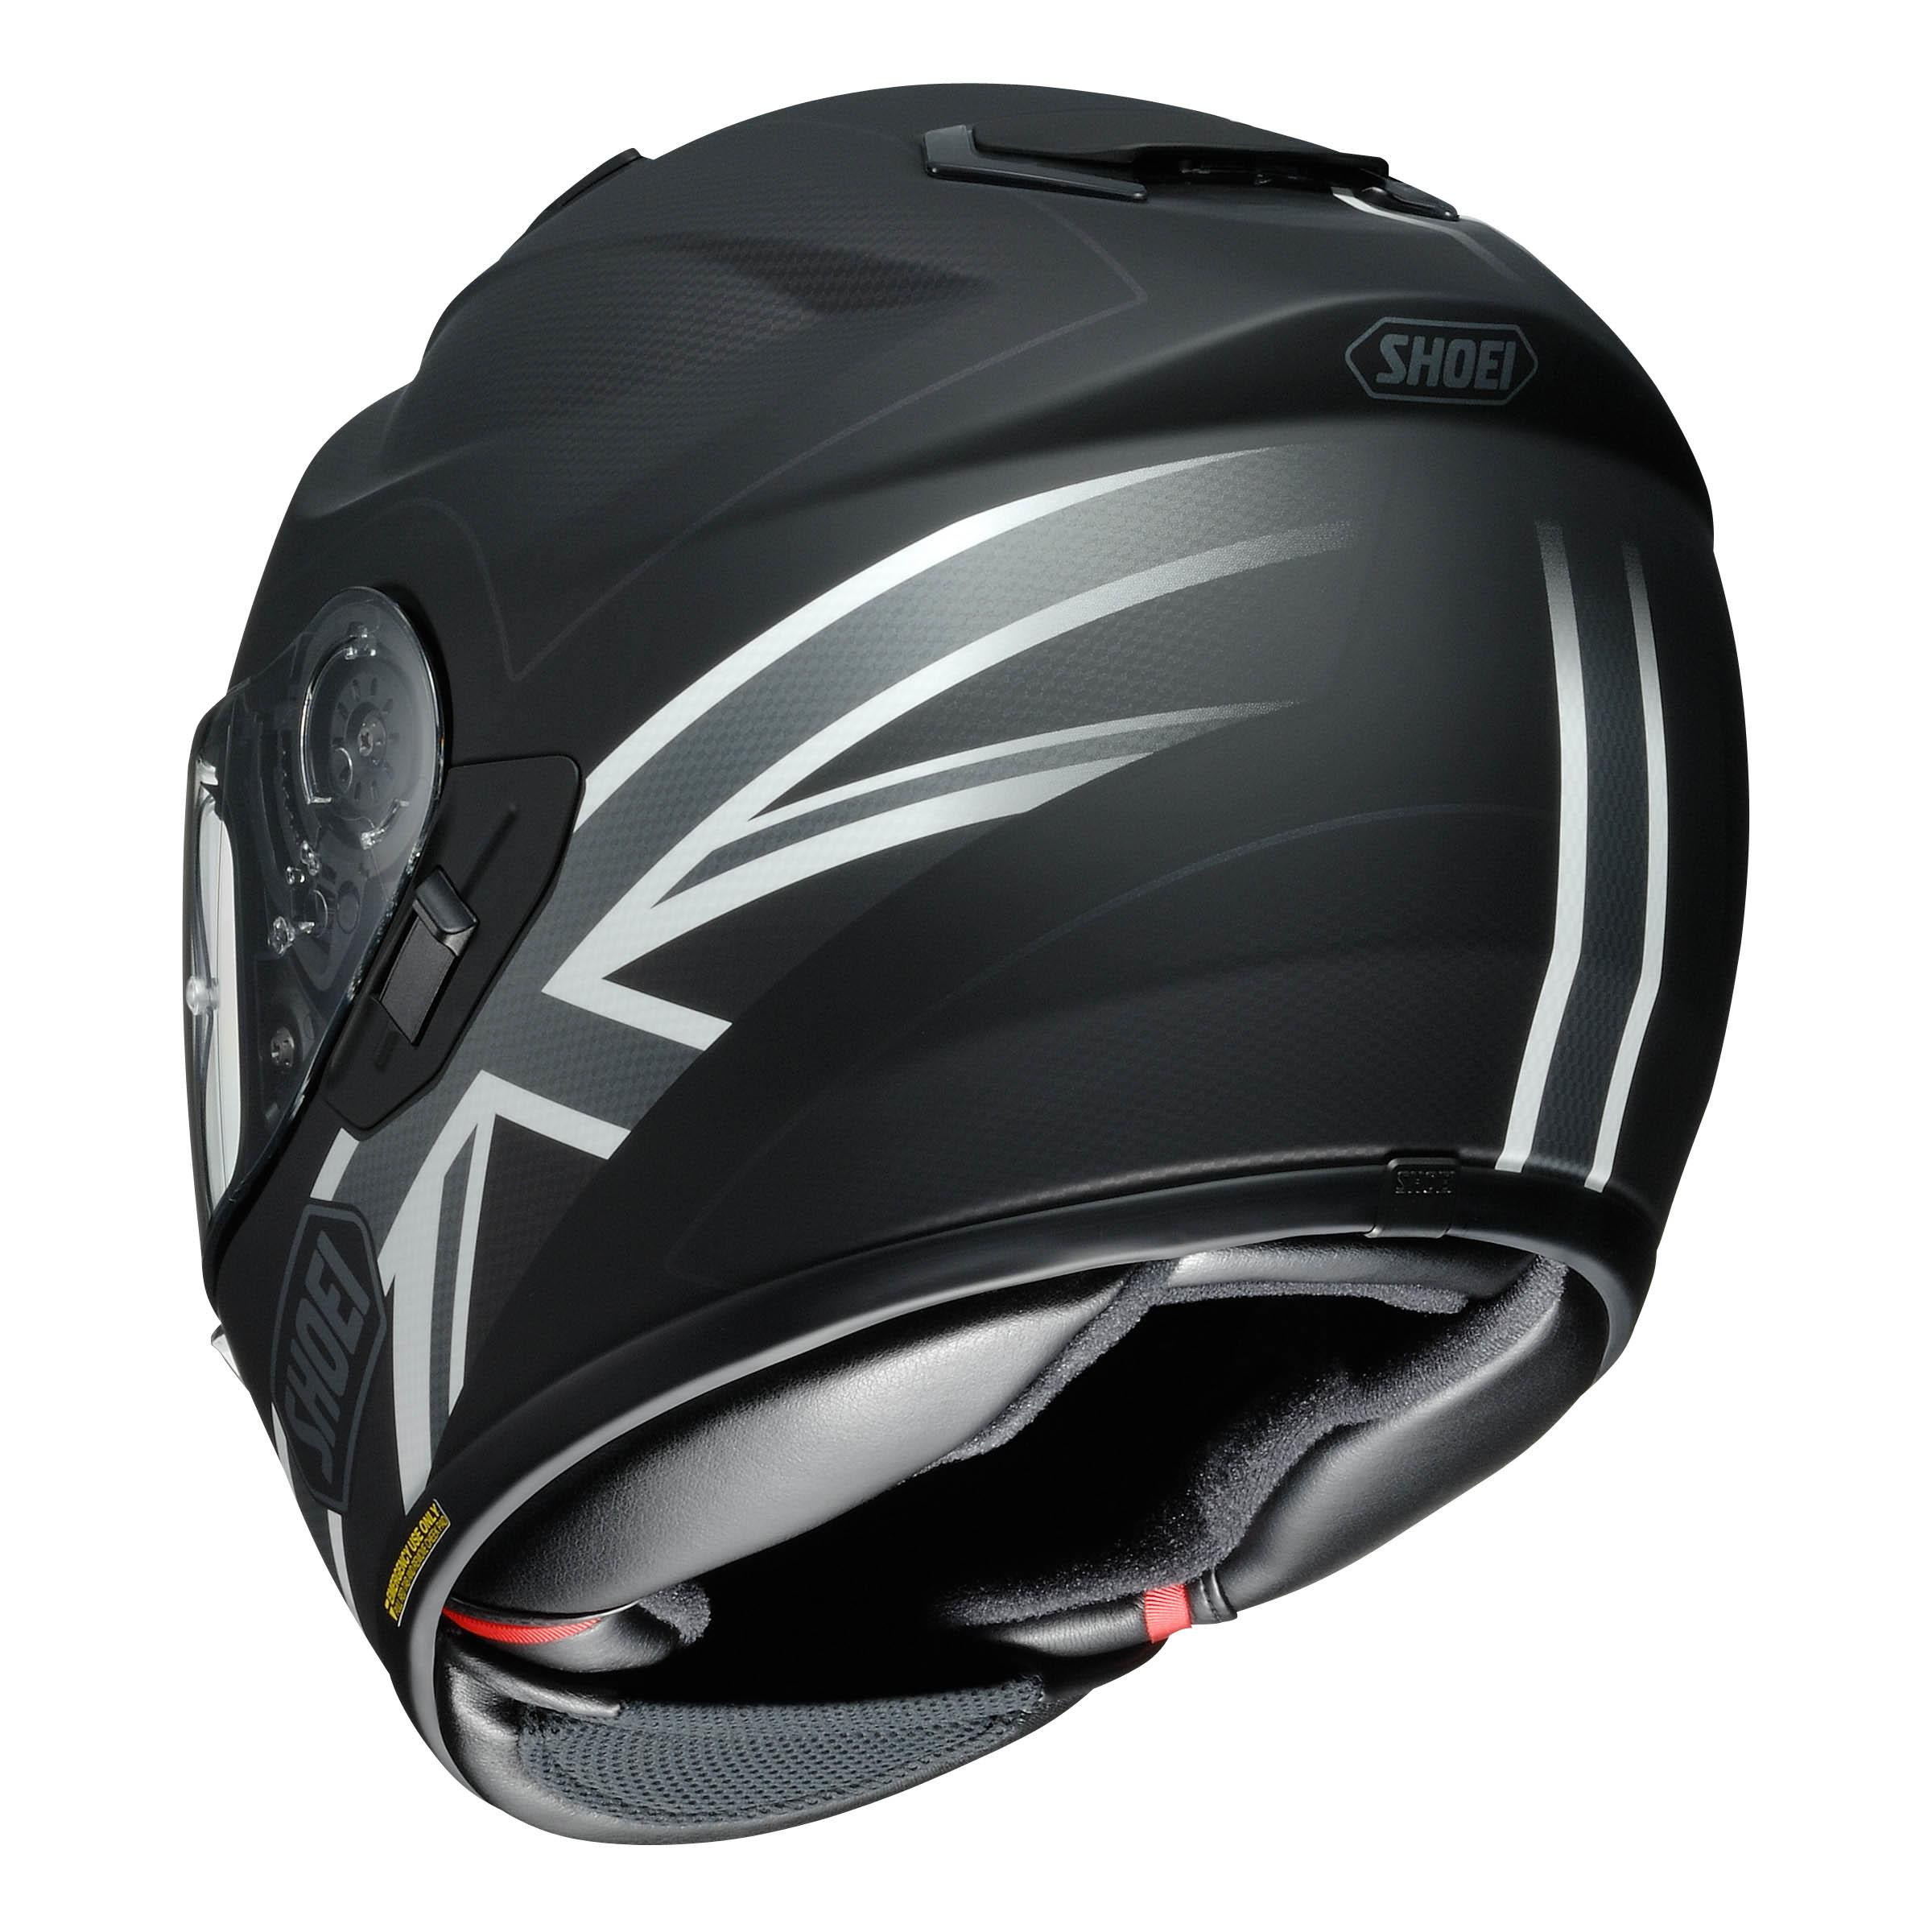 clearance shoei gt air royalty tc 5 helmet online motorcycle accessories australia scm. Black Bedroom Furniture Sets. Home Design Ideas